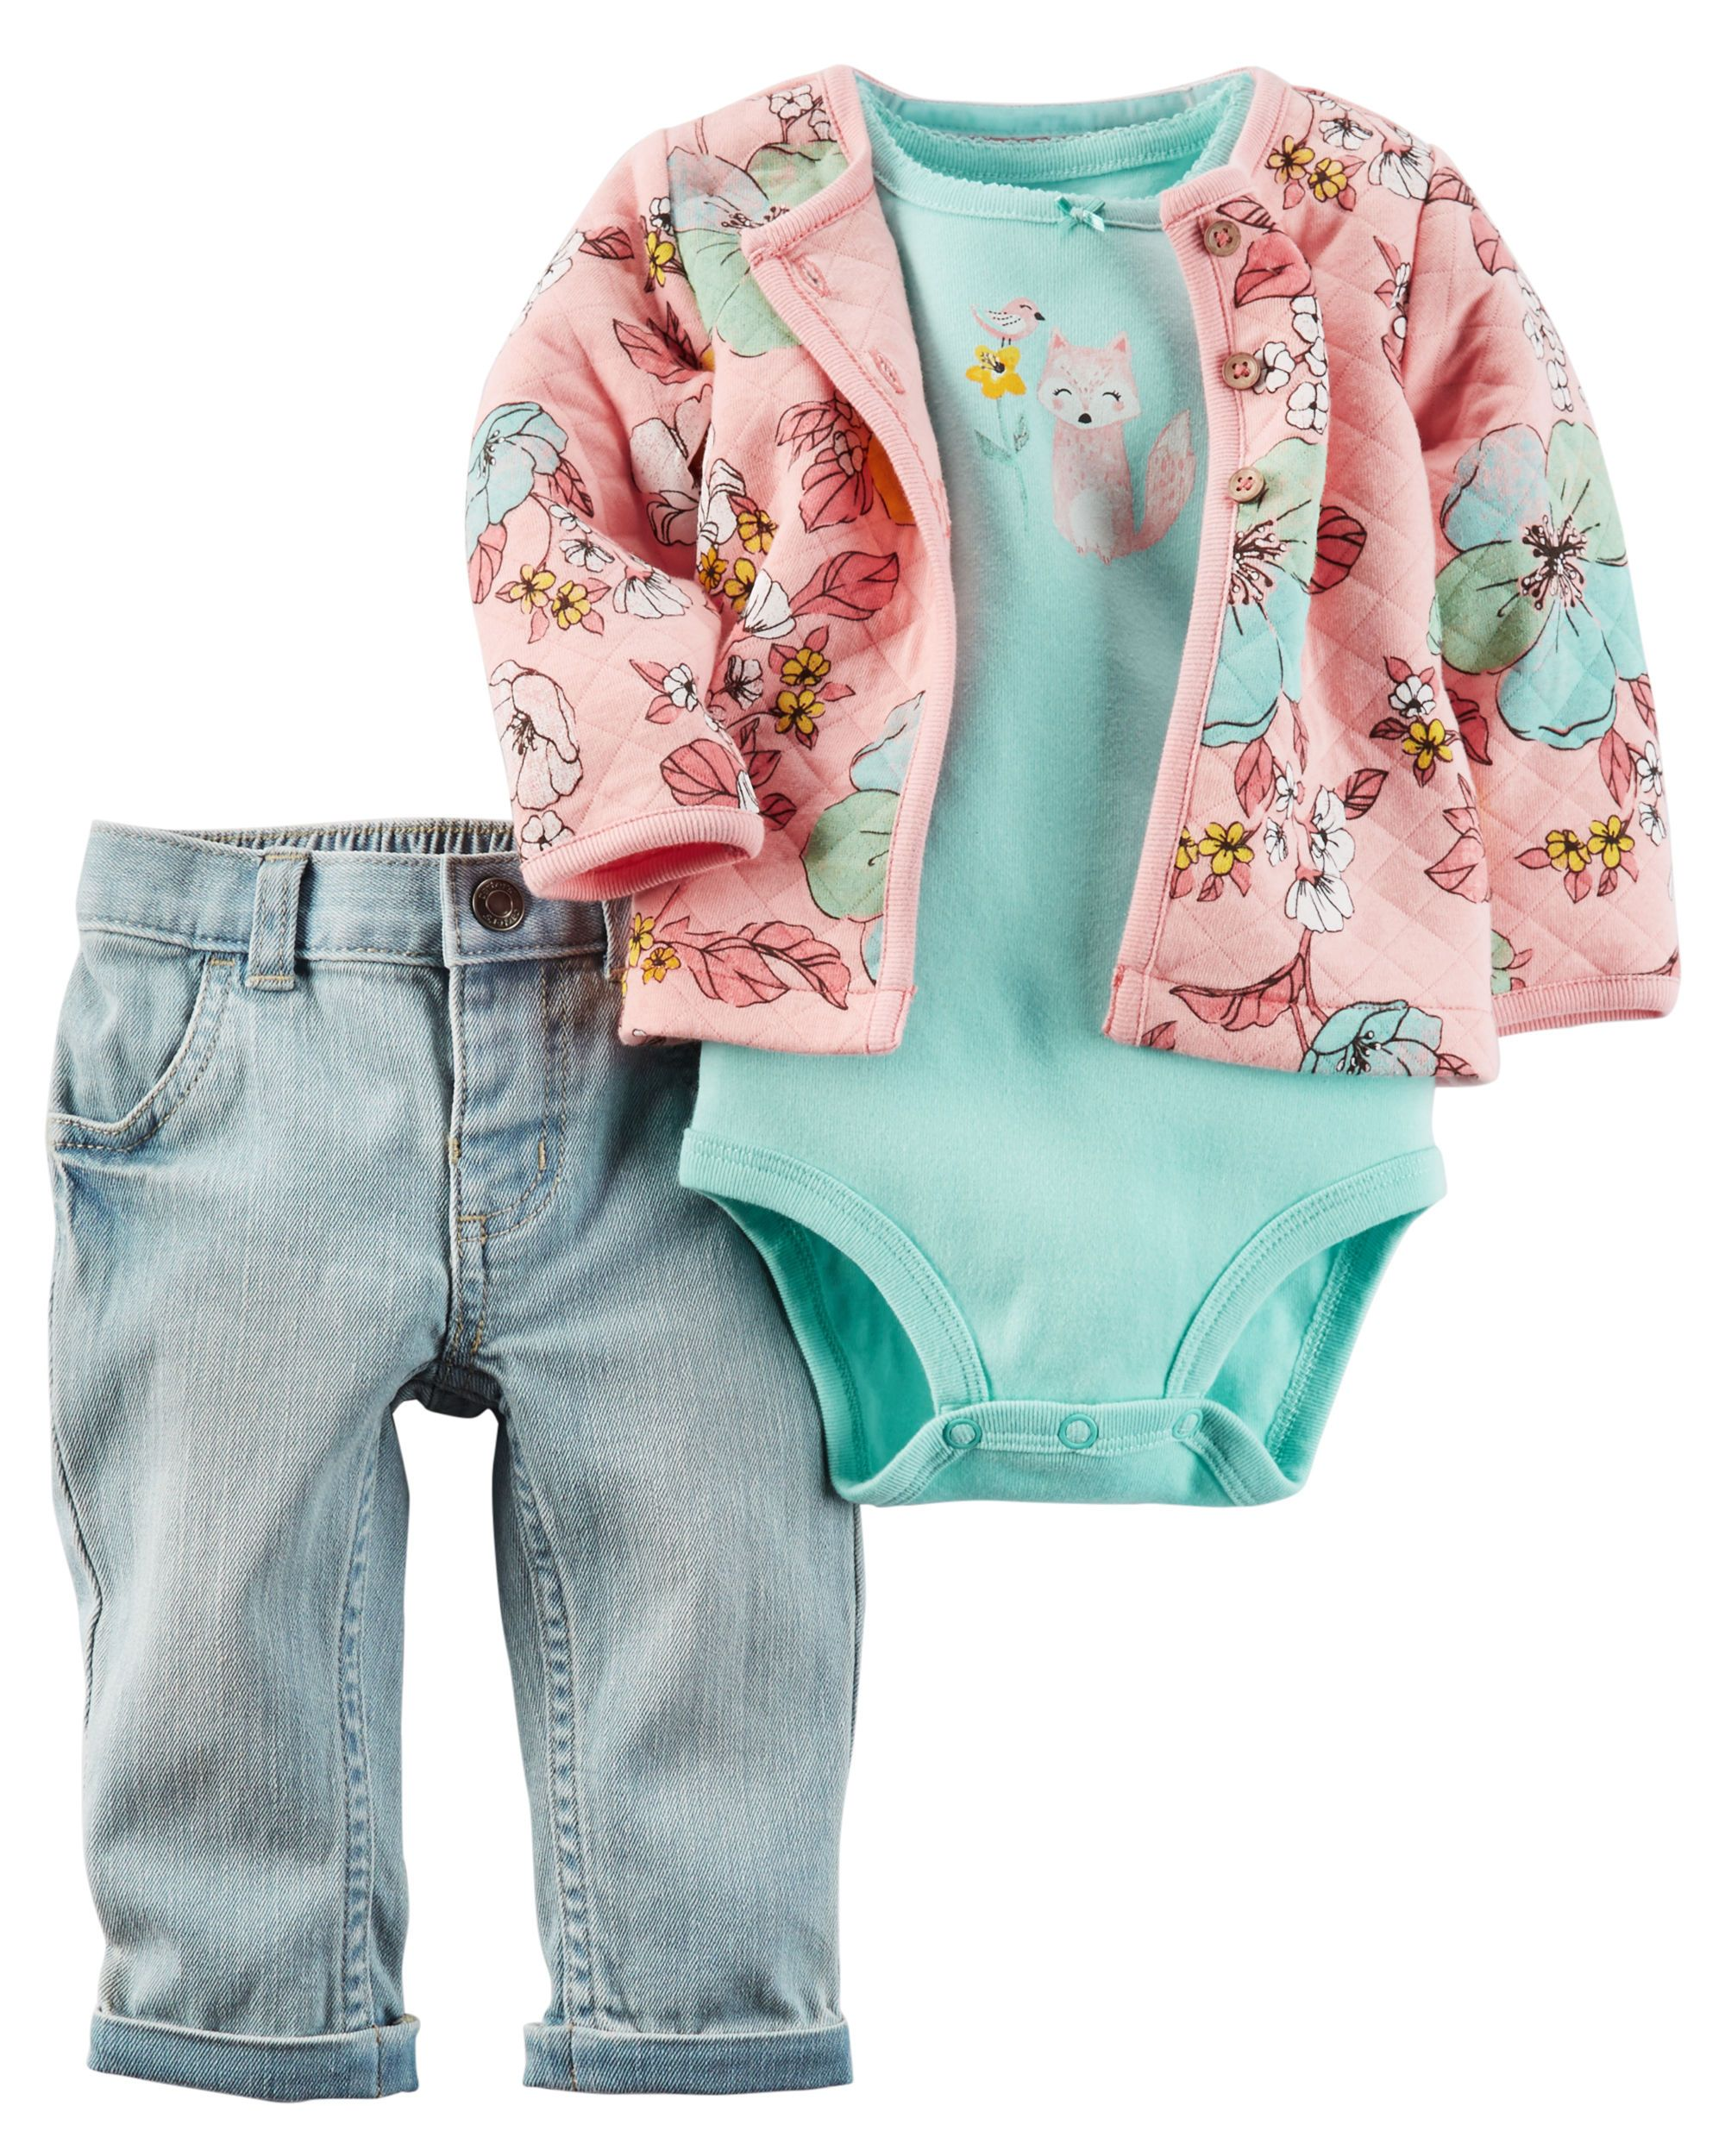 3-Piece Quilted Cardigan Set | Jeggings, Bodysuit and Cotton : quilted cardigan - Adamdwight.com